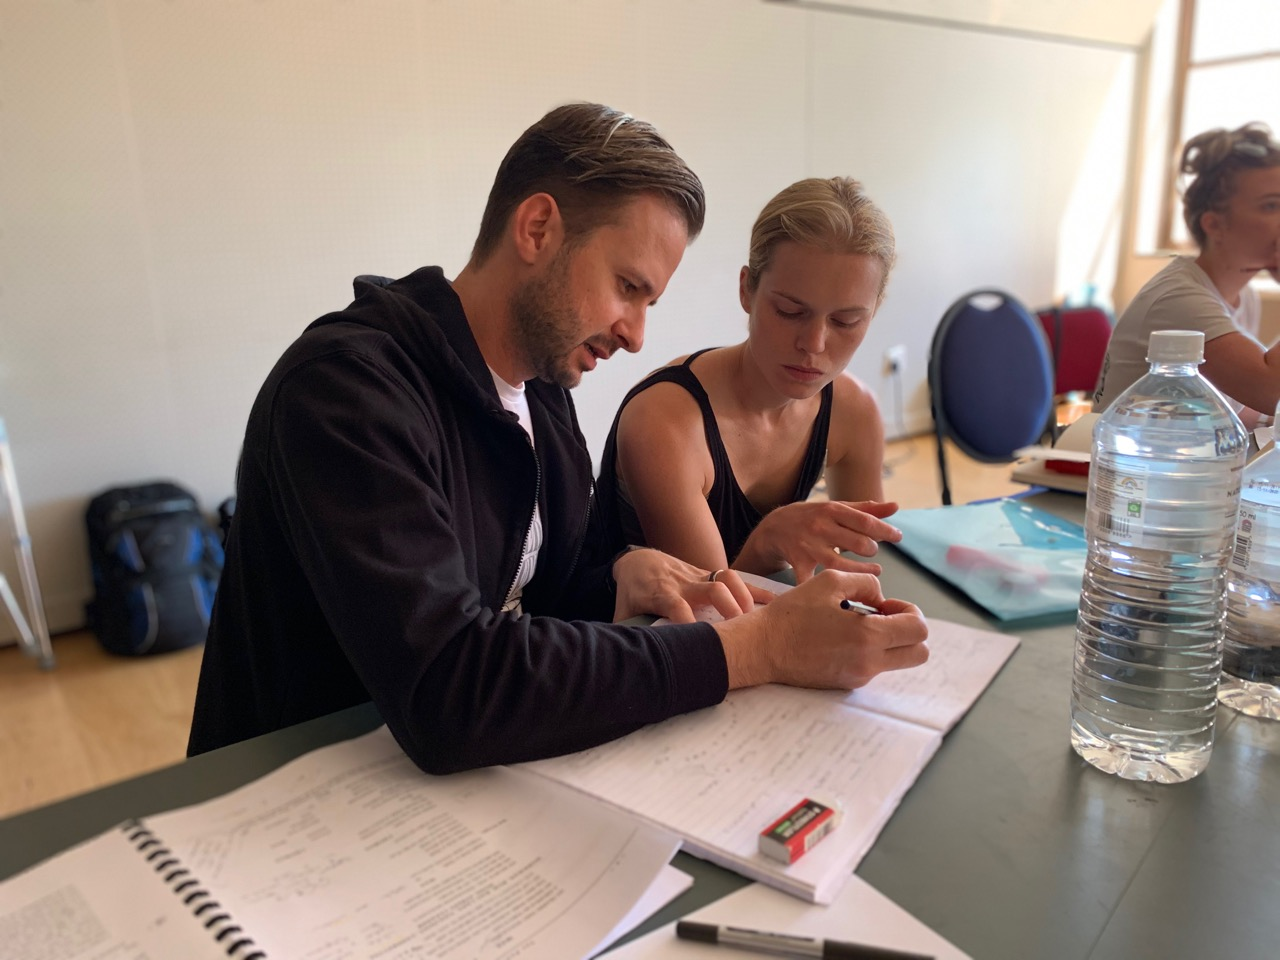 Choreography Duane Alexander consults with Mila De Biaggi during rehearsals for THE PRODUCERS